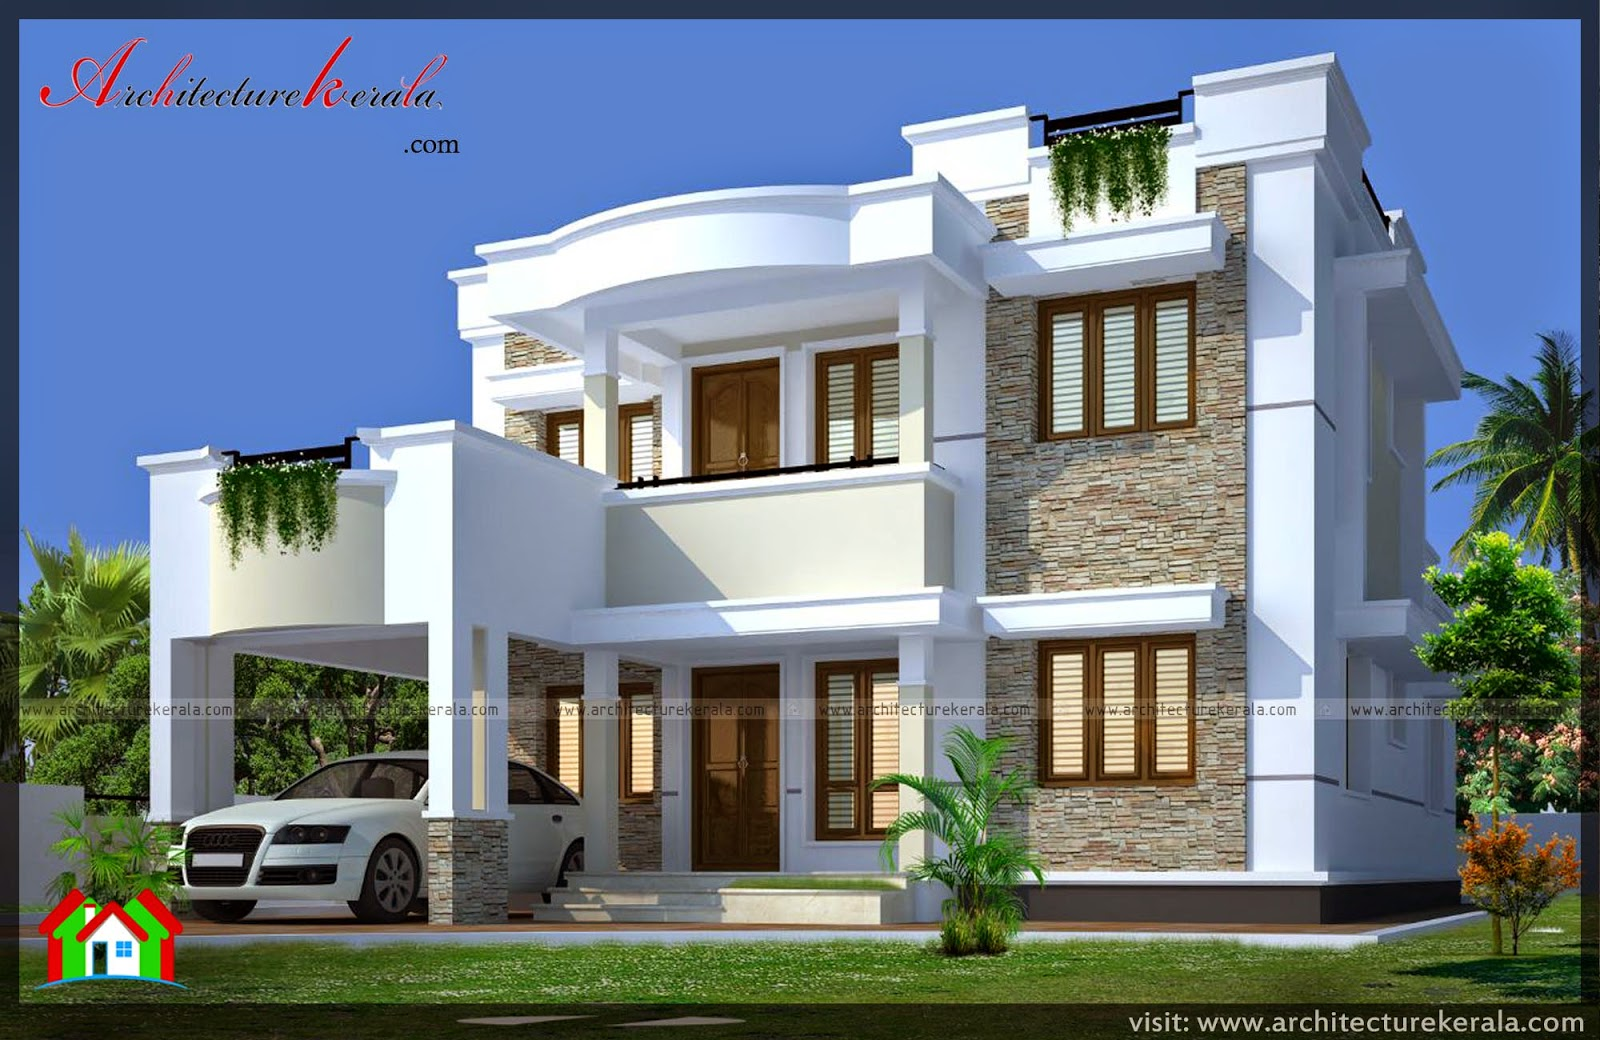 Architecture kerala 3 bhk single floor kerala house plan for Kerala building elevation